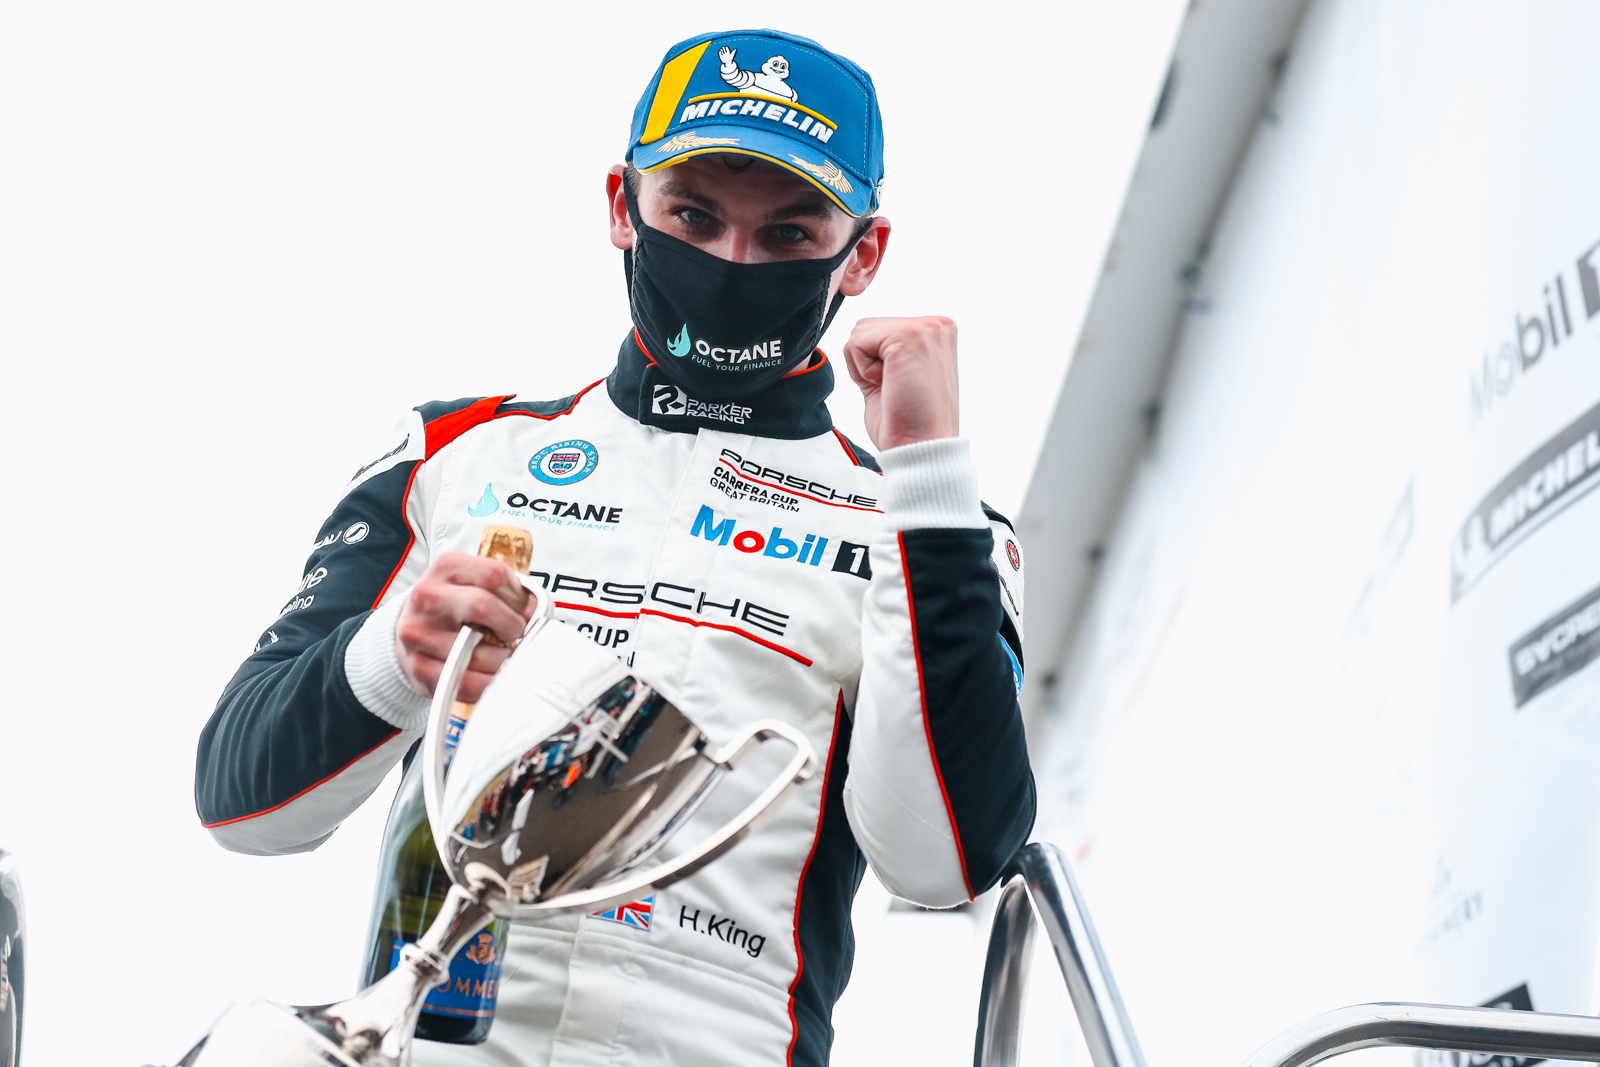 Octane Finance-backed Harry King rockets to stunning Knockhill win